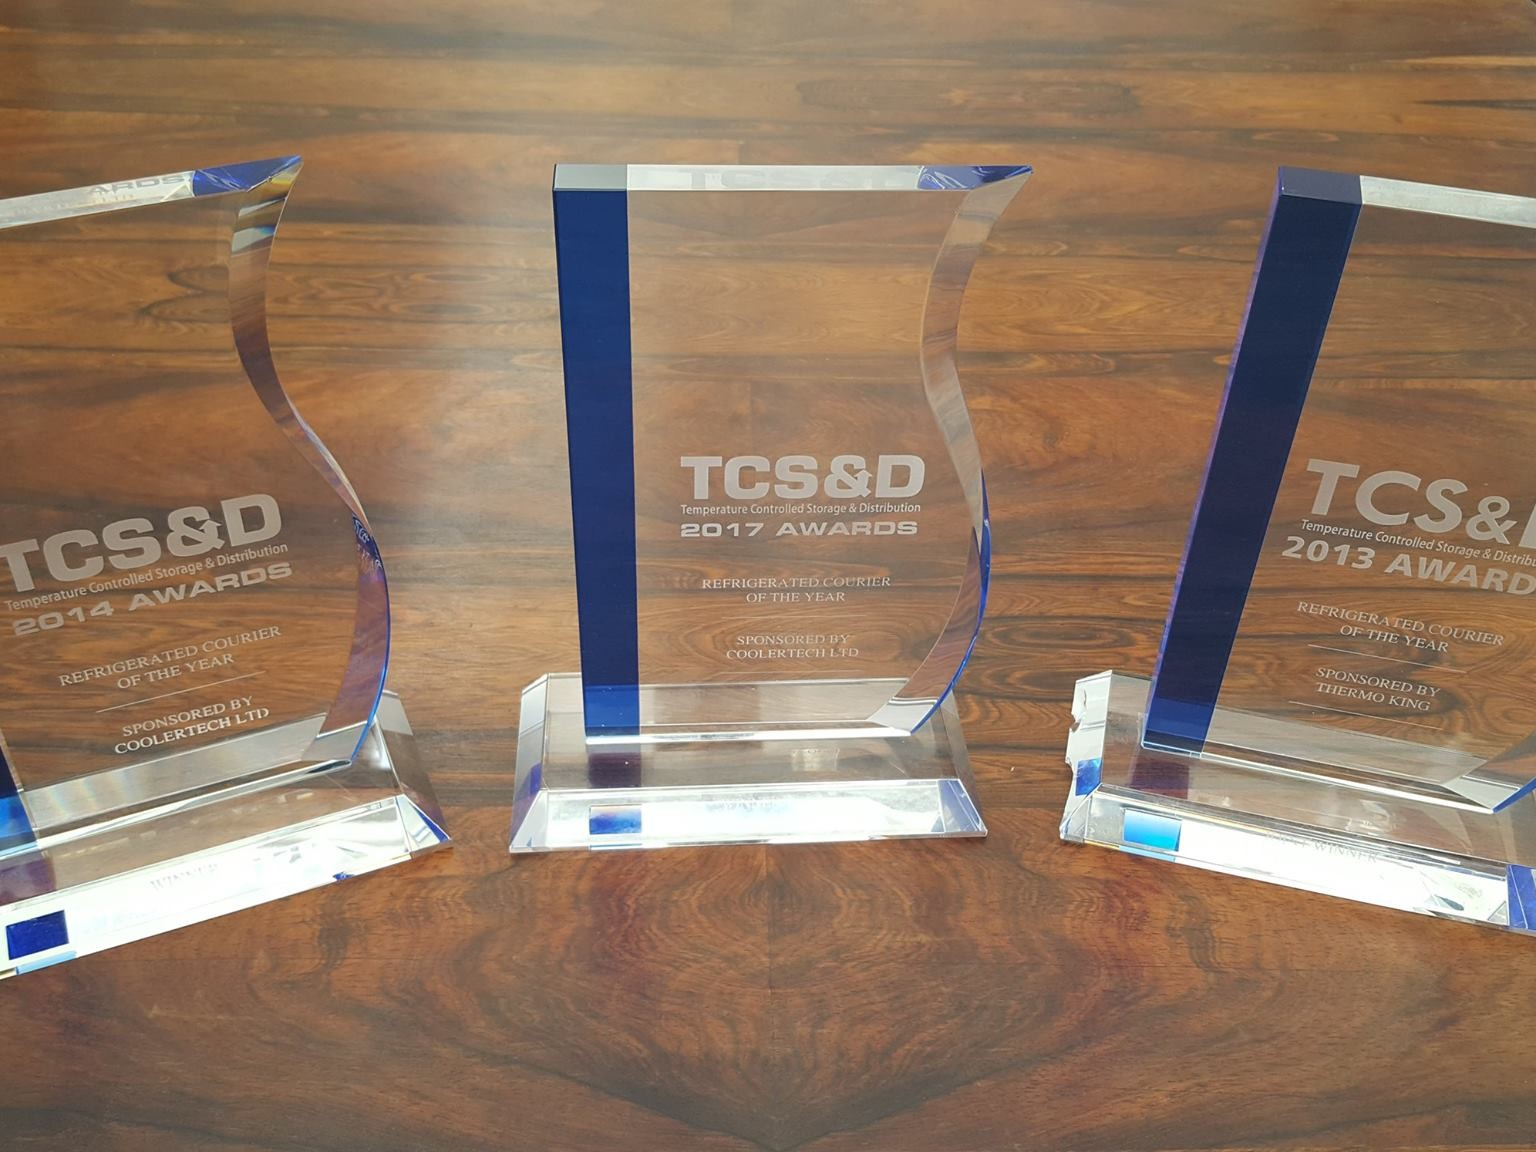 Refrigerated Courier of the Year